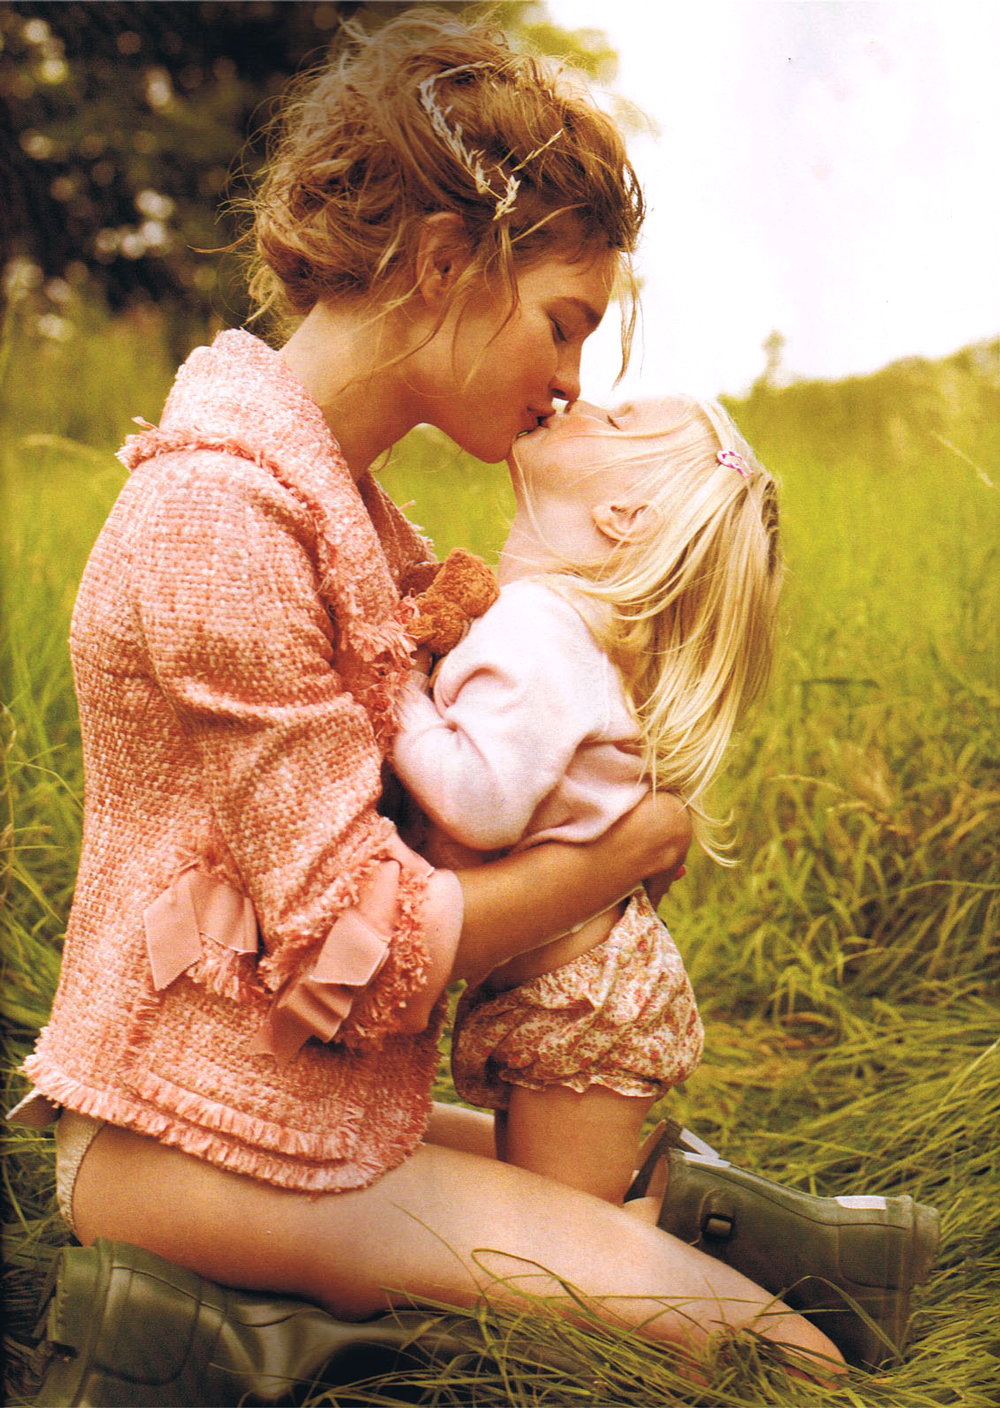 Natalia Vodianova & Neva photographed by Mario Testino for Field of dreams / Vogue US November 2008 / baby girl, mother & daughter fashion editorials / models & their children / via fashioned by love british fashion blog